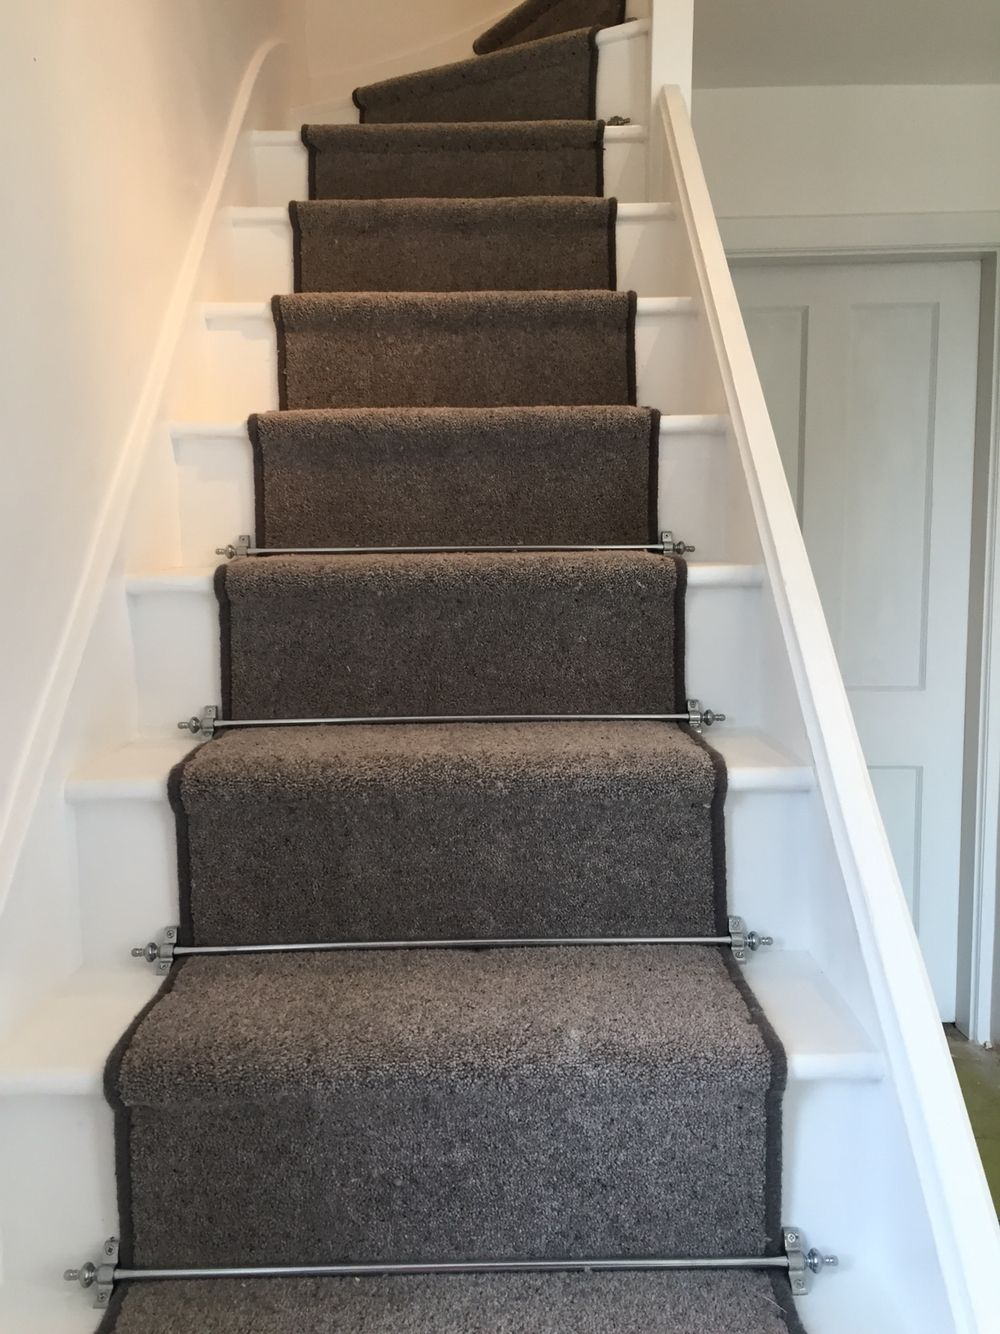 Sr Carpet Runner Holders - Carpet Vidalondon